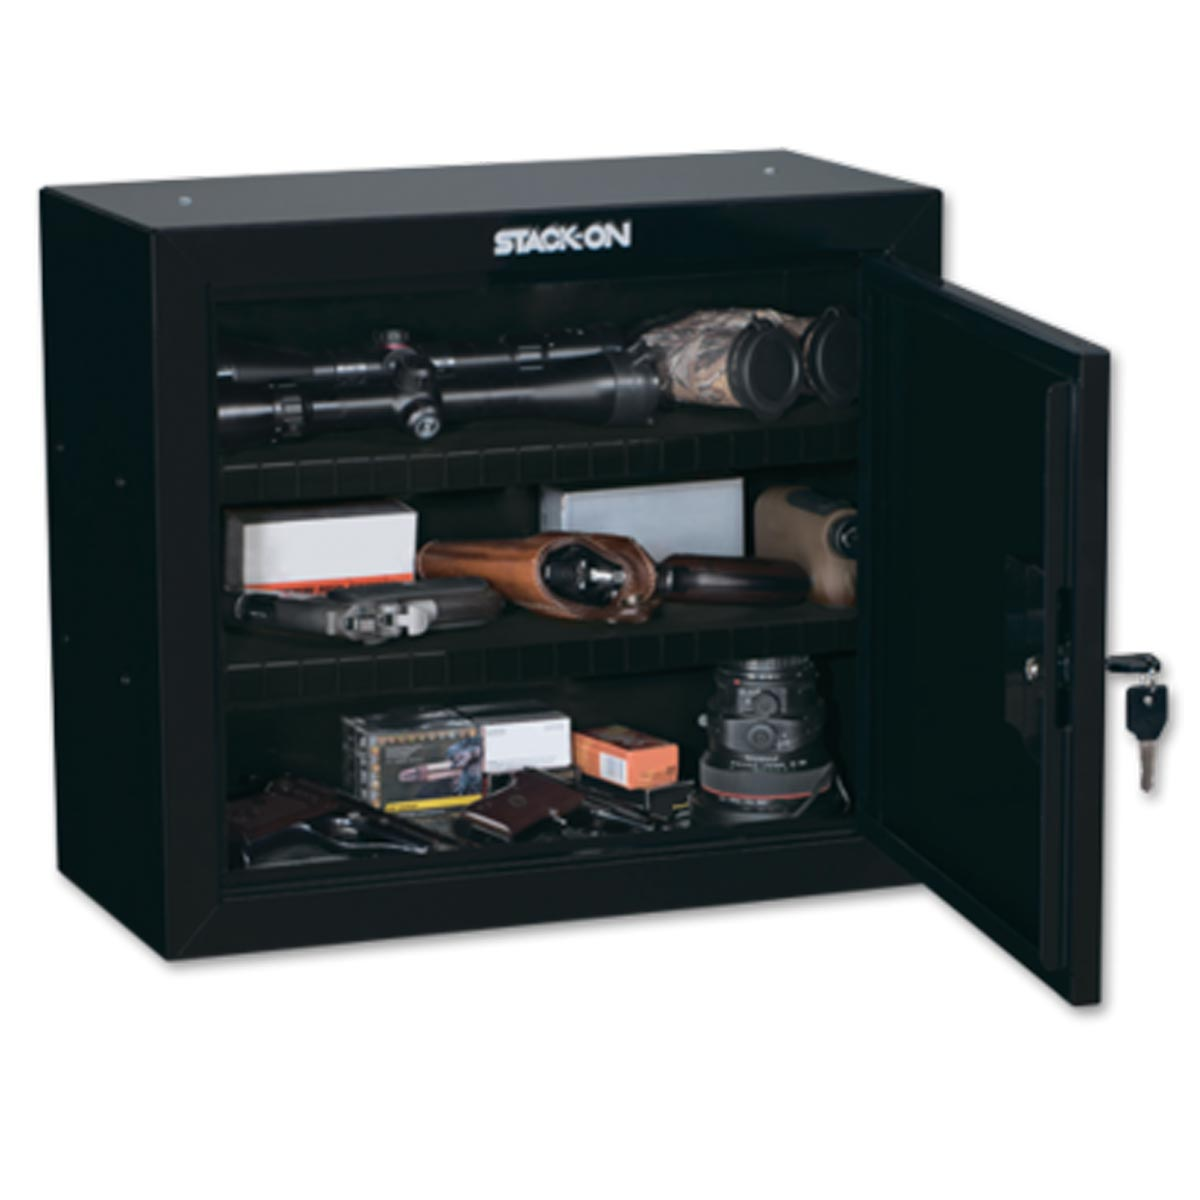 Stack-On Pistol/Ammo Cabinet with 2 Shelves - GCB-900GCB-900